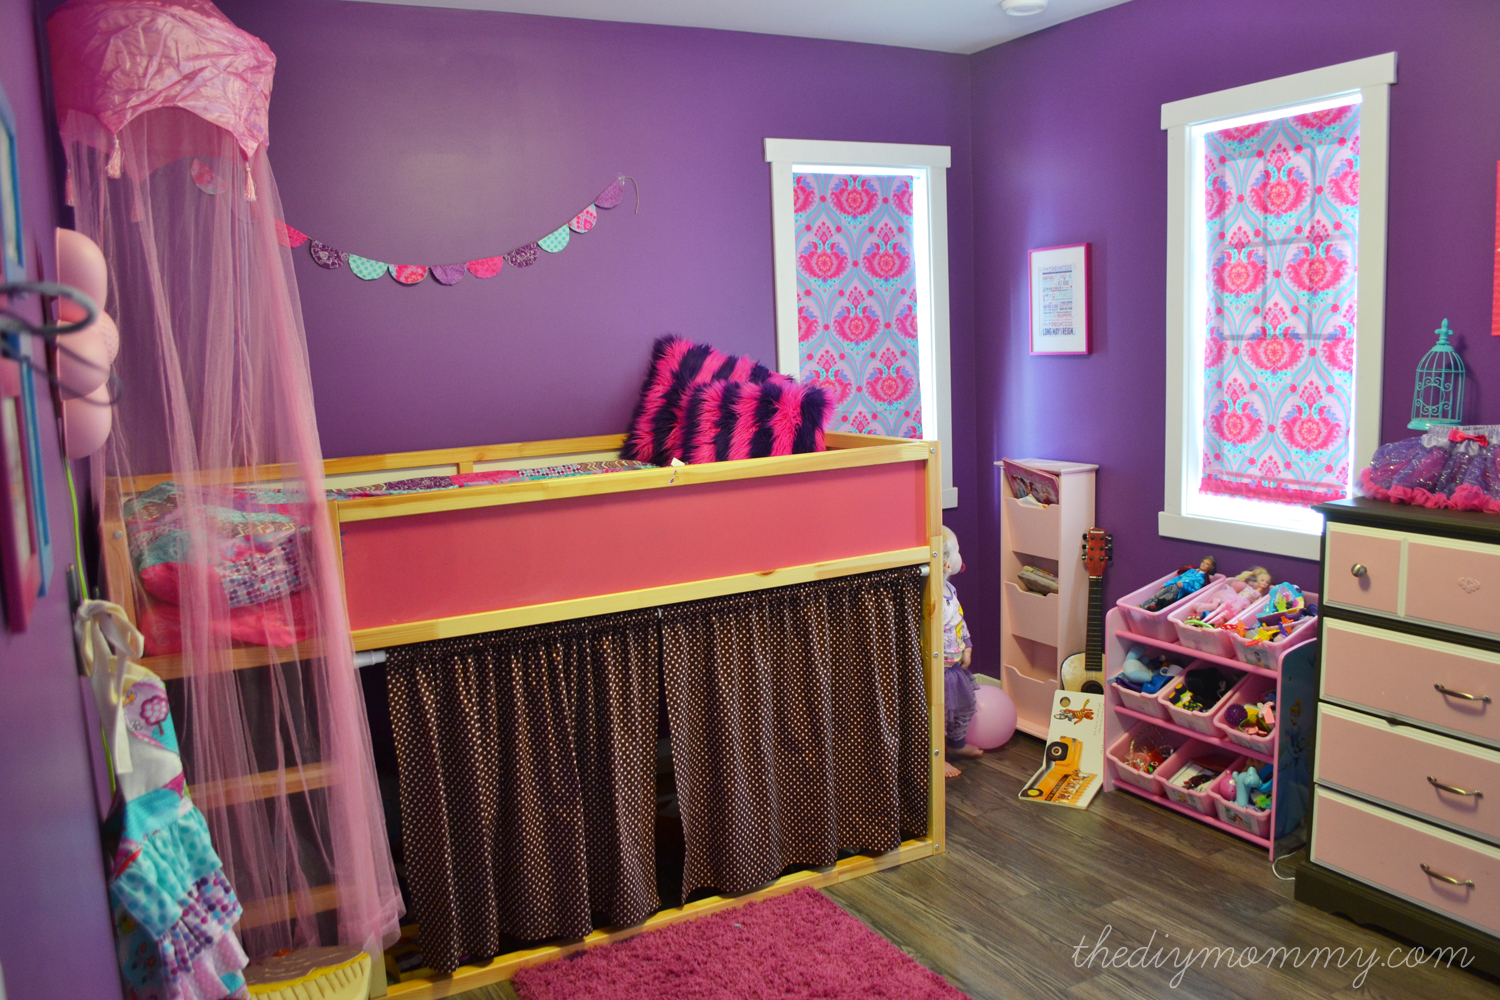 Little c s bright jewel toned bedroom win custom for Bedroom ideas diy